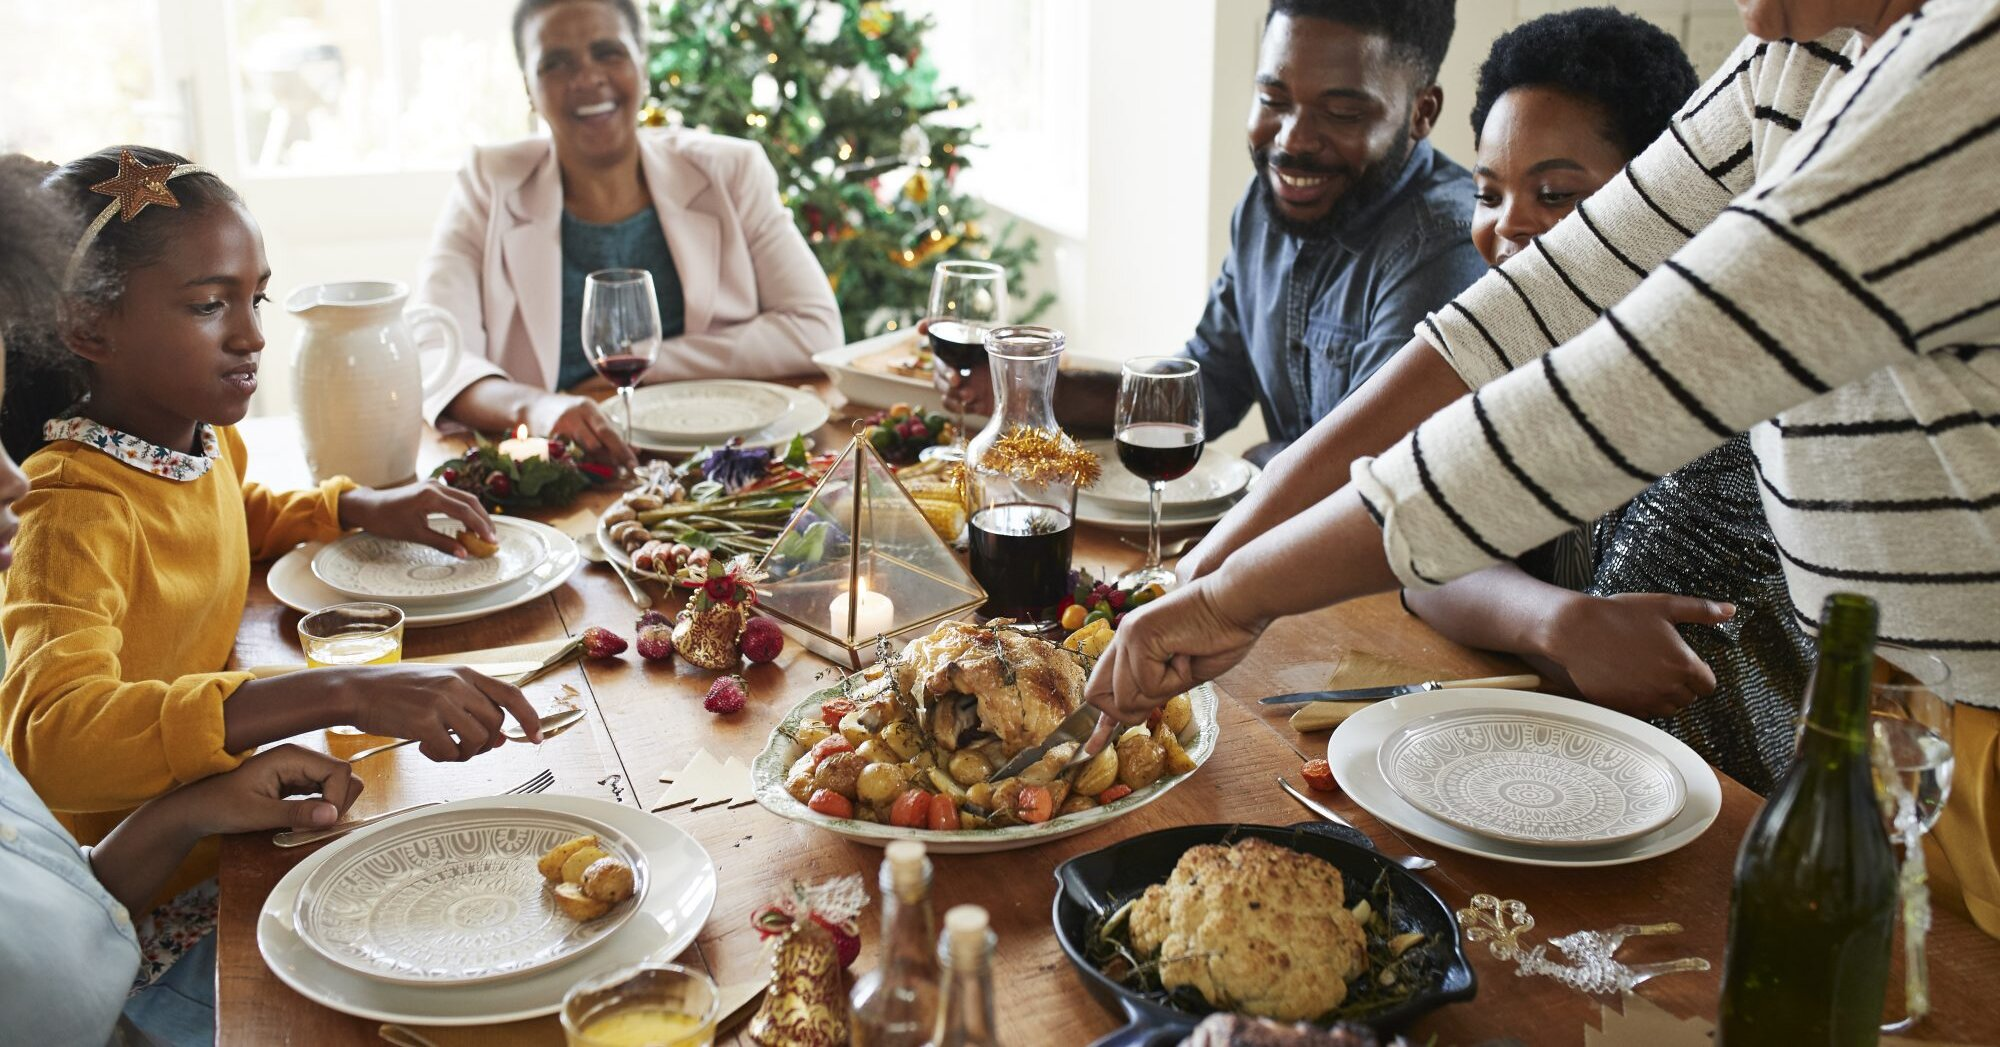 The Etiquette of Declining a Holiday Party Invitation in Light of the COVID-19 Pandemic